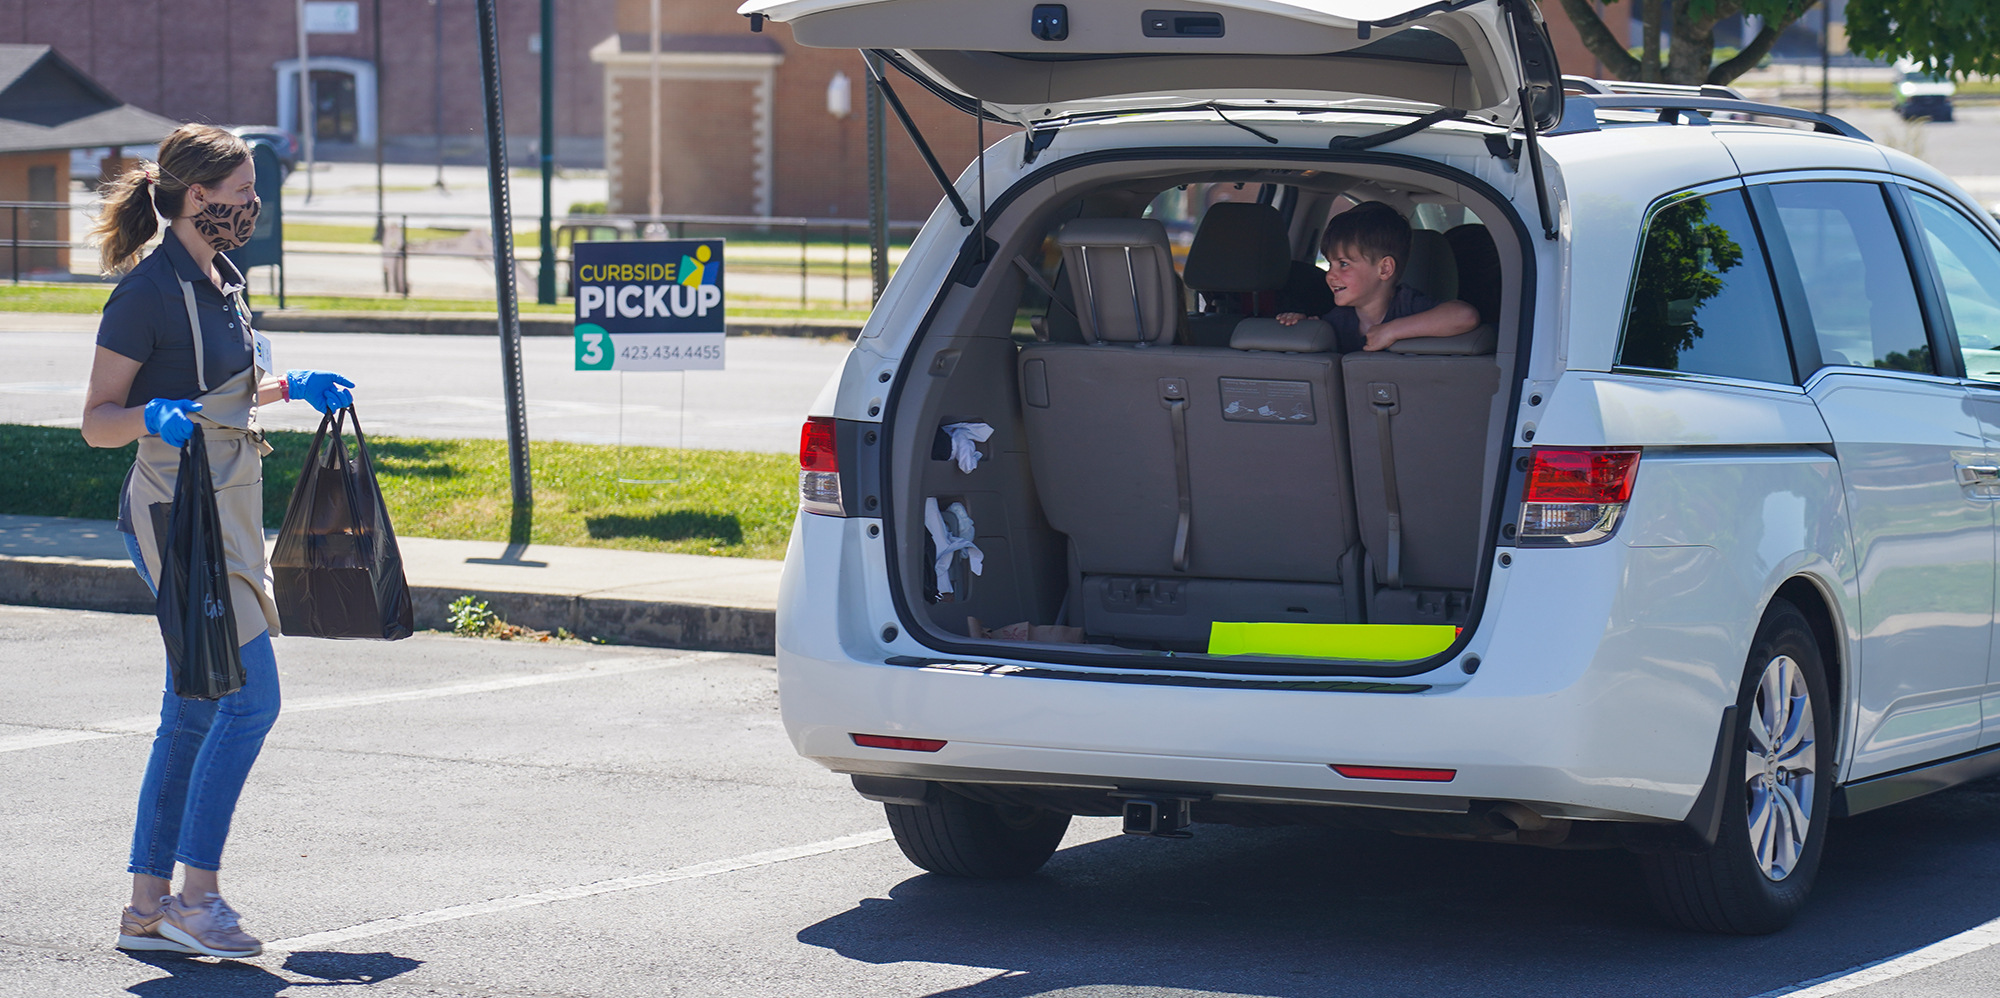 Library Director Julia Turpin puts curbside orders into the back of a car. A child smiles from the back seat.